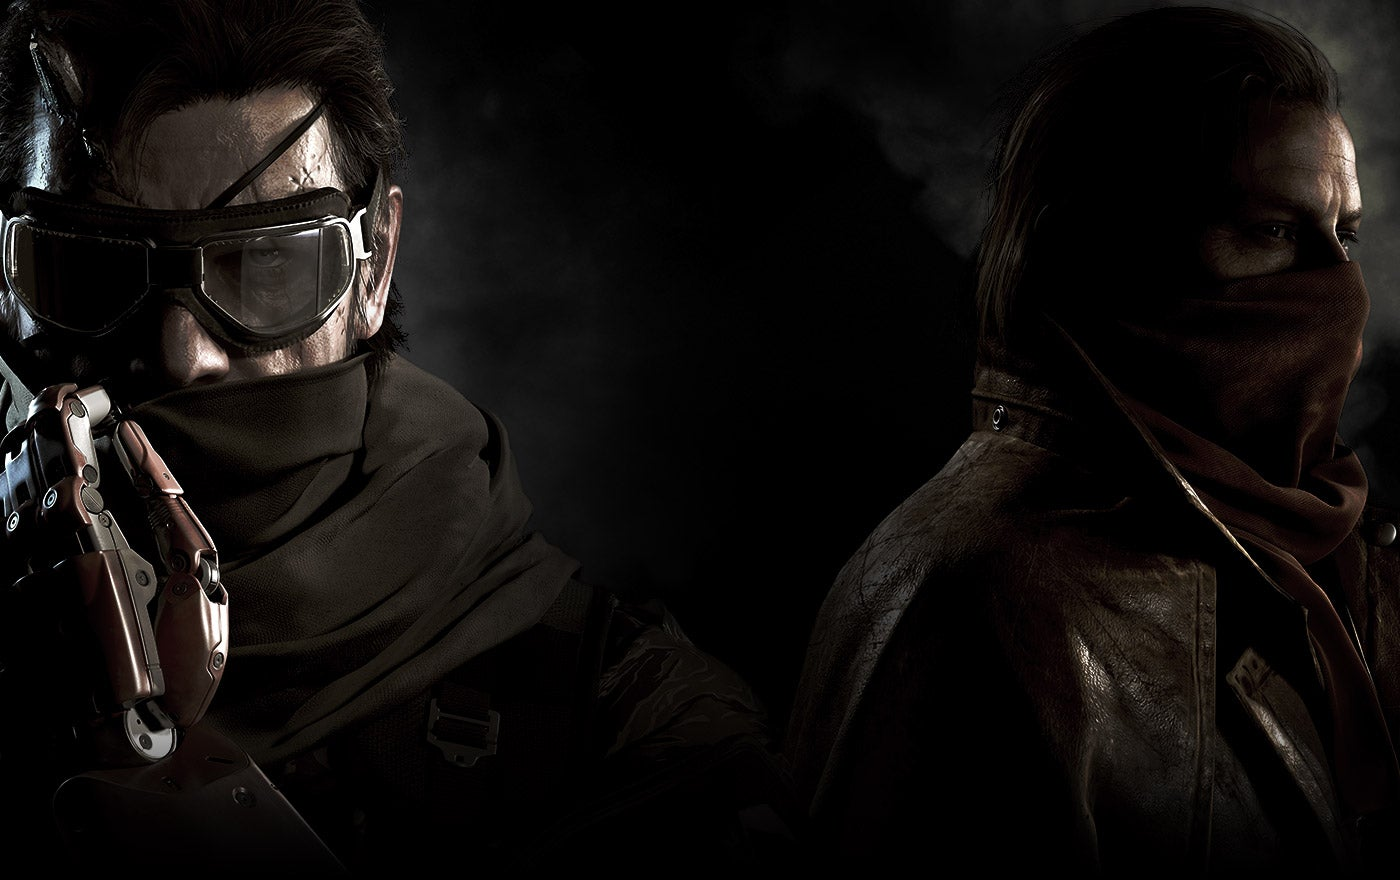 Metal Gear Solid V coming to PC Hfww7ypby2gtfb0jsft3